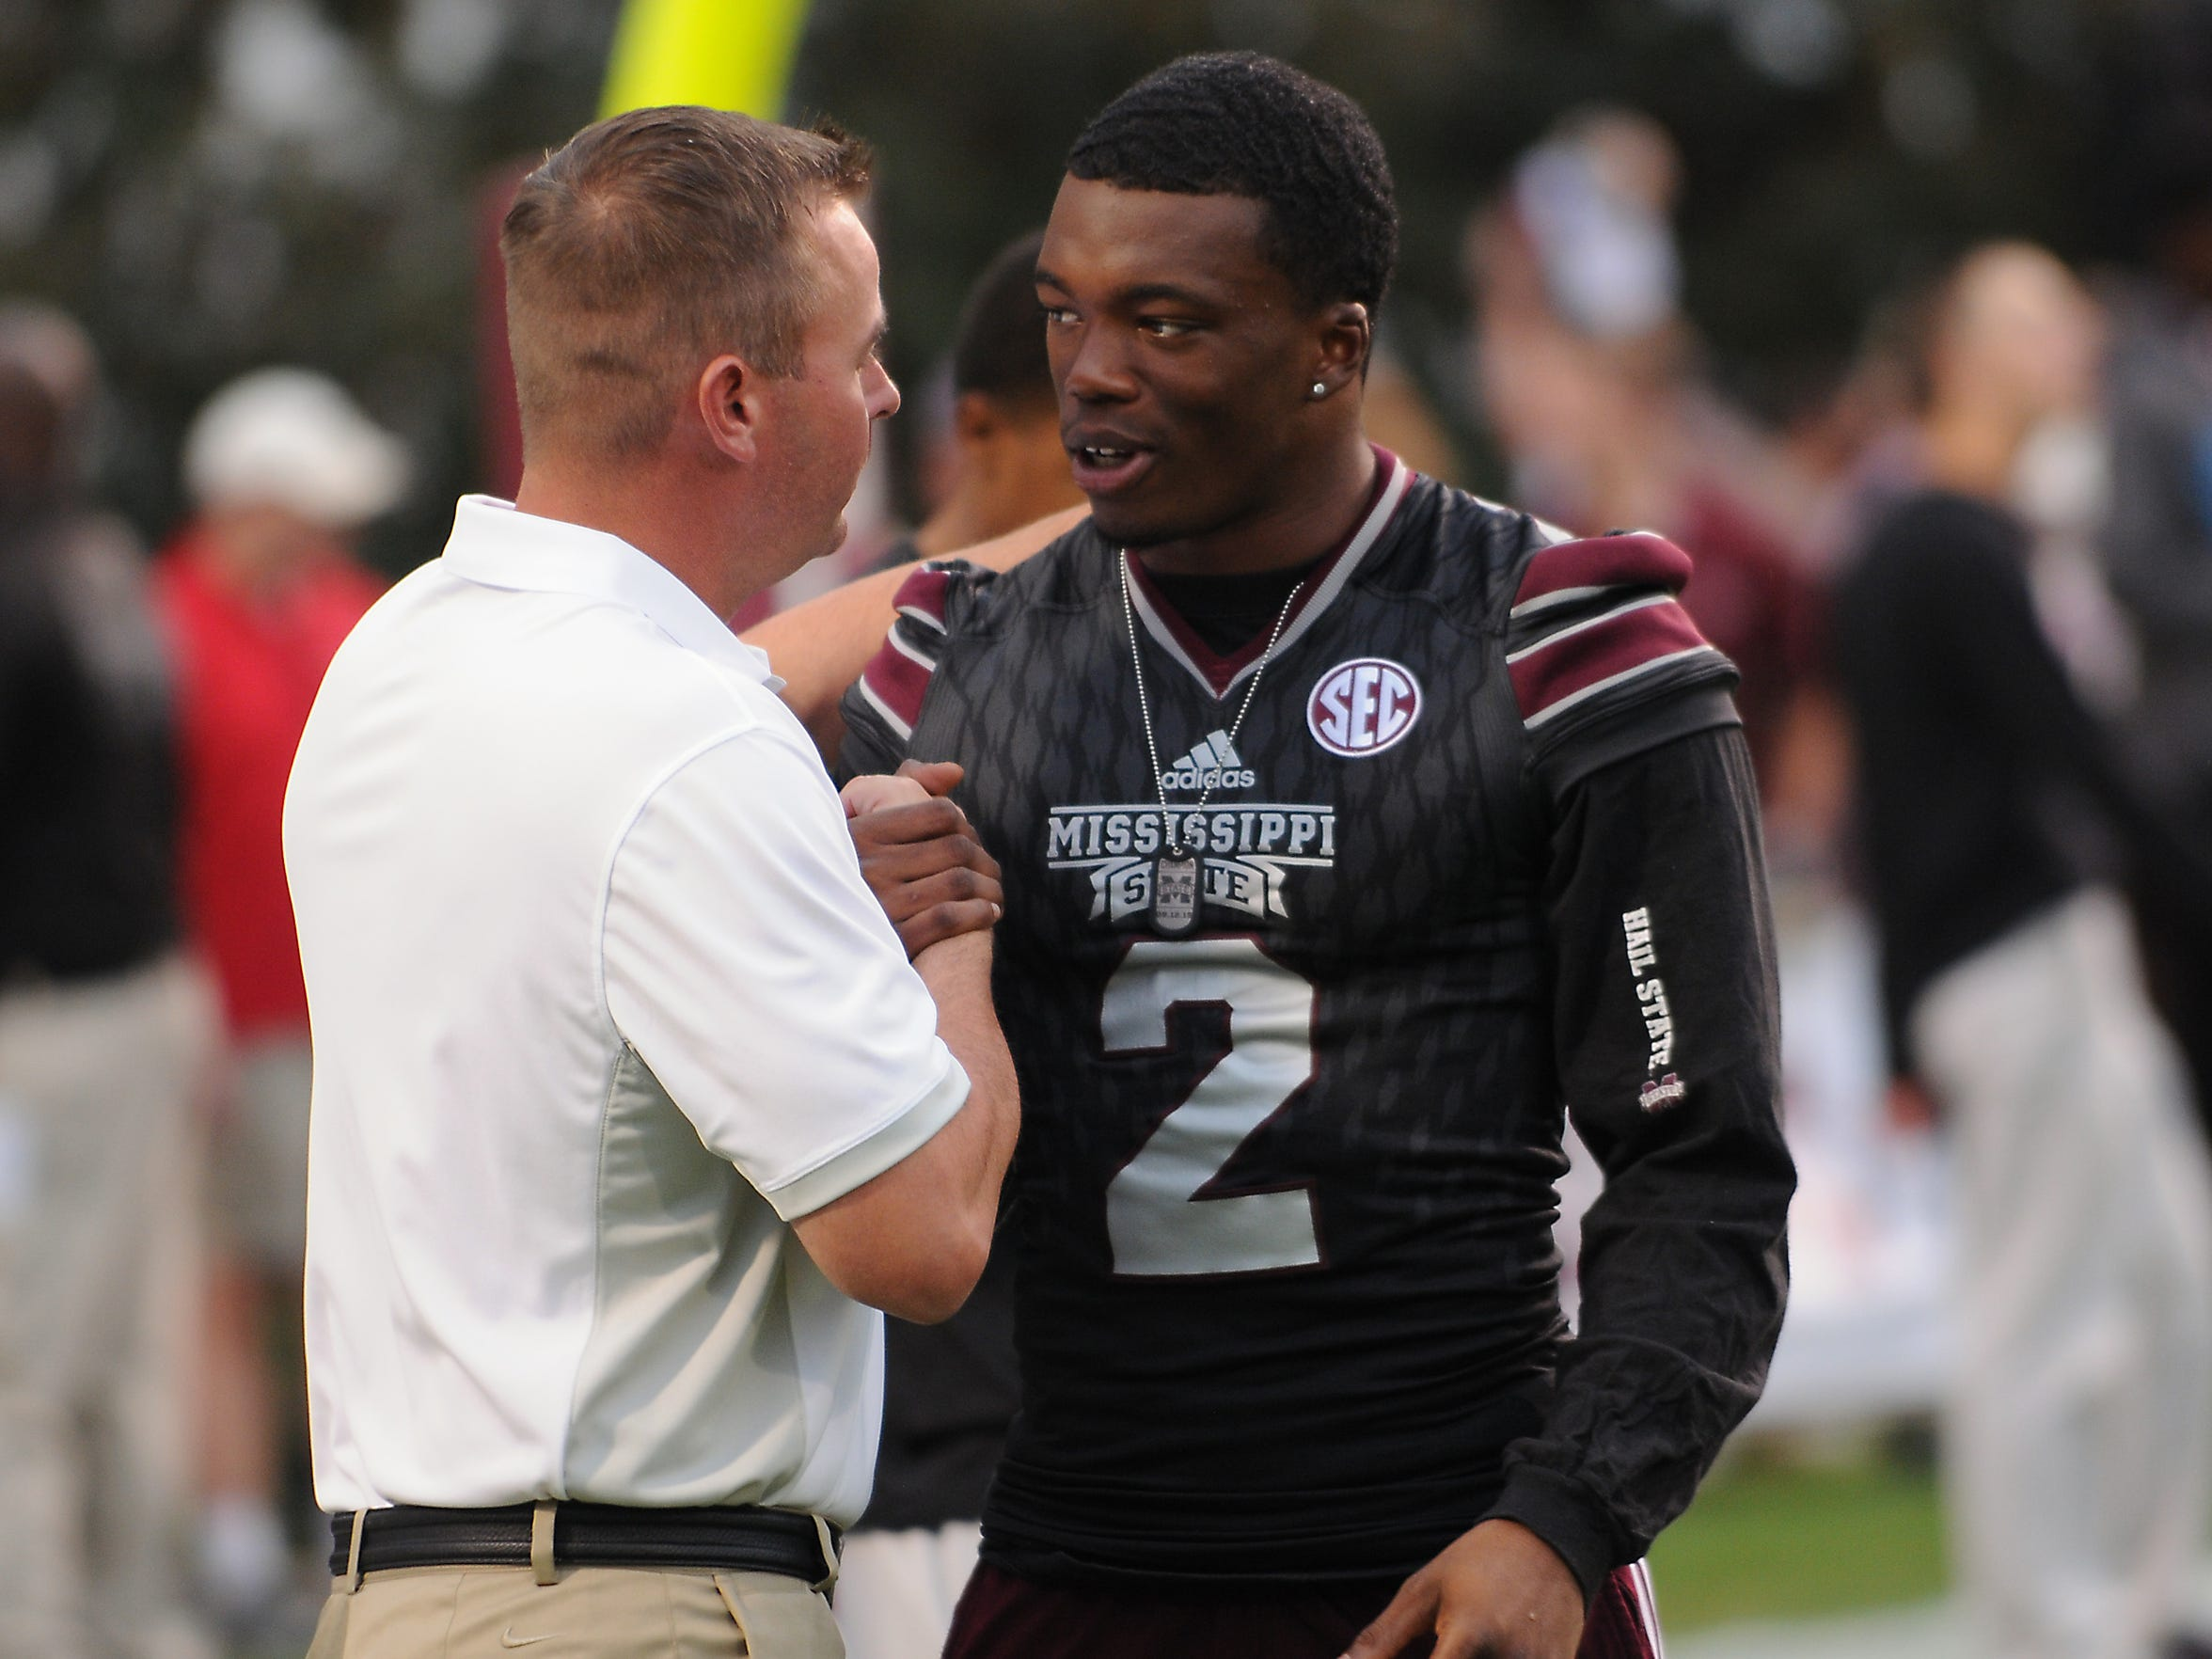 Kentucky Assistant Coach Tommy Mainord, left, speaks to Mississippi State defensive back Will Redmond before their game Saturday.